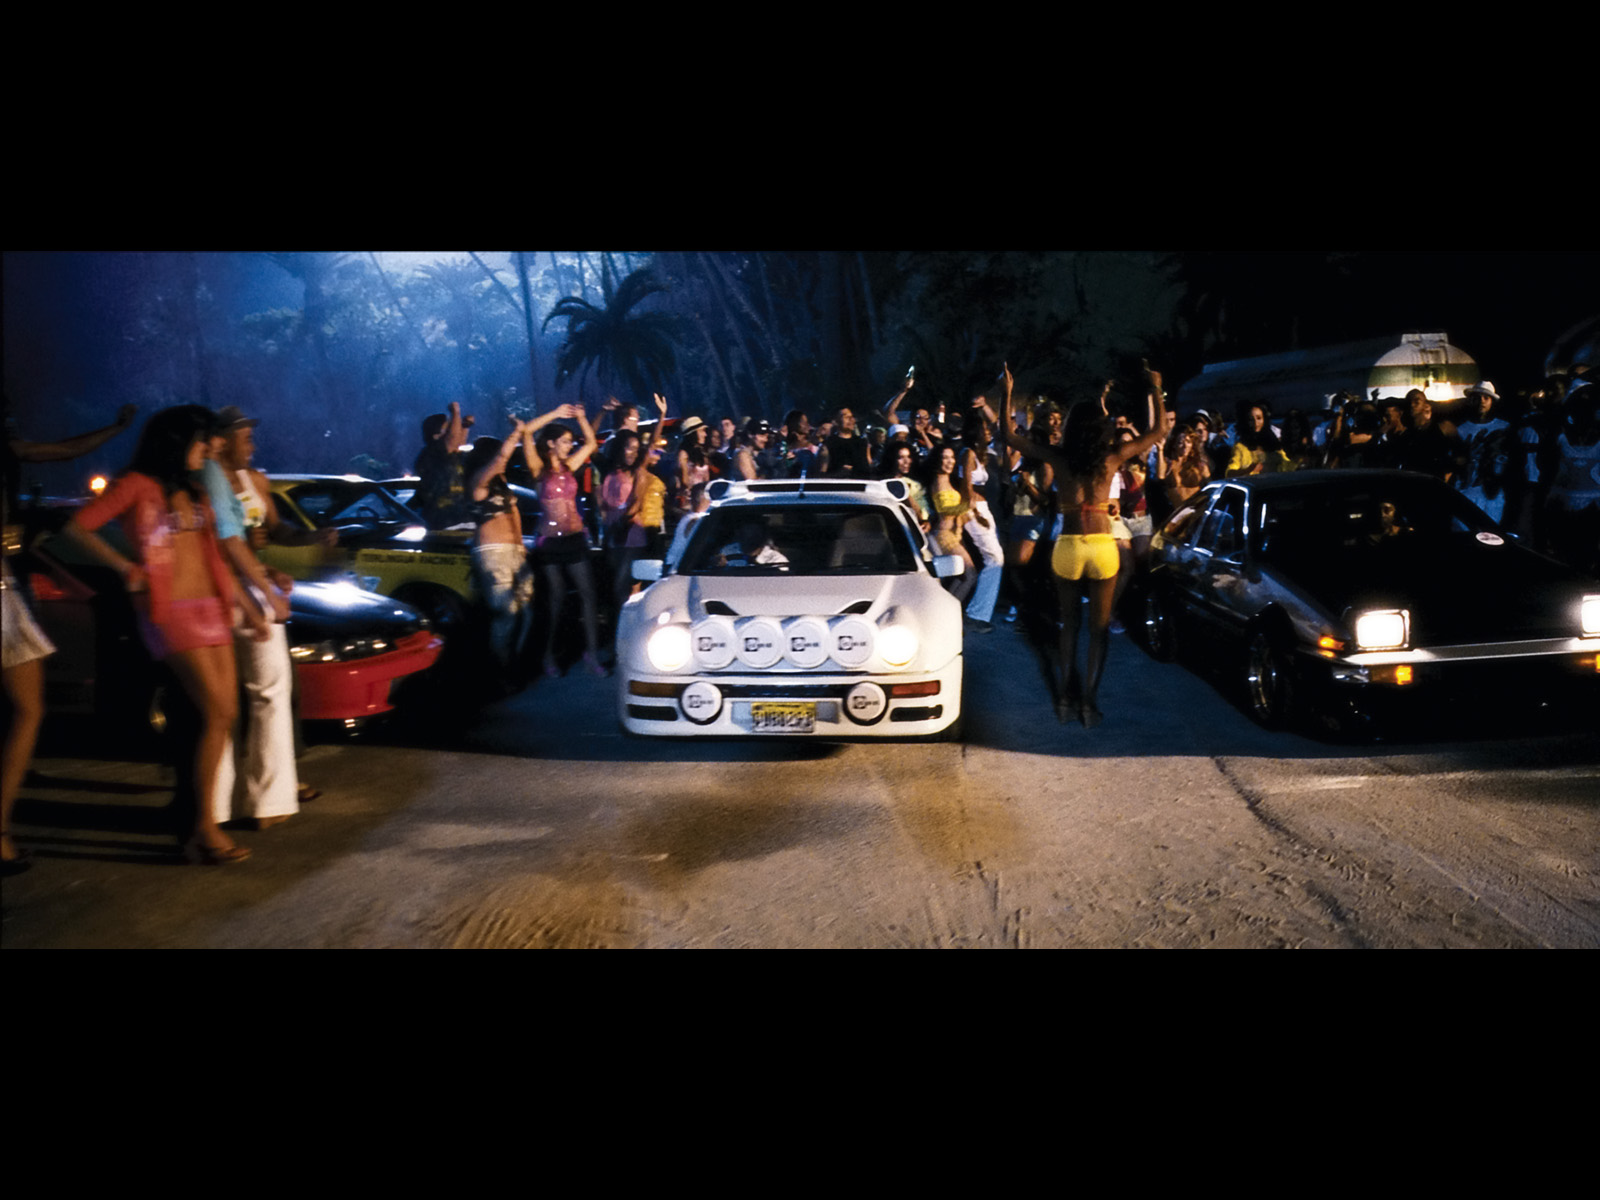 Fast And Furious Movie Cars Party 1600x1200jpg 1600x1200